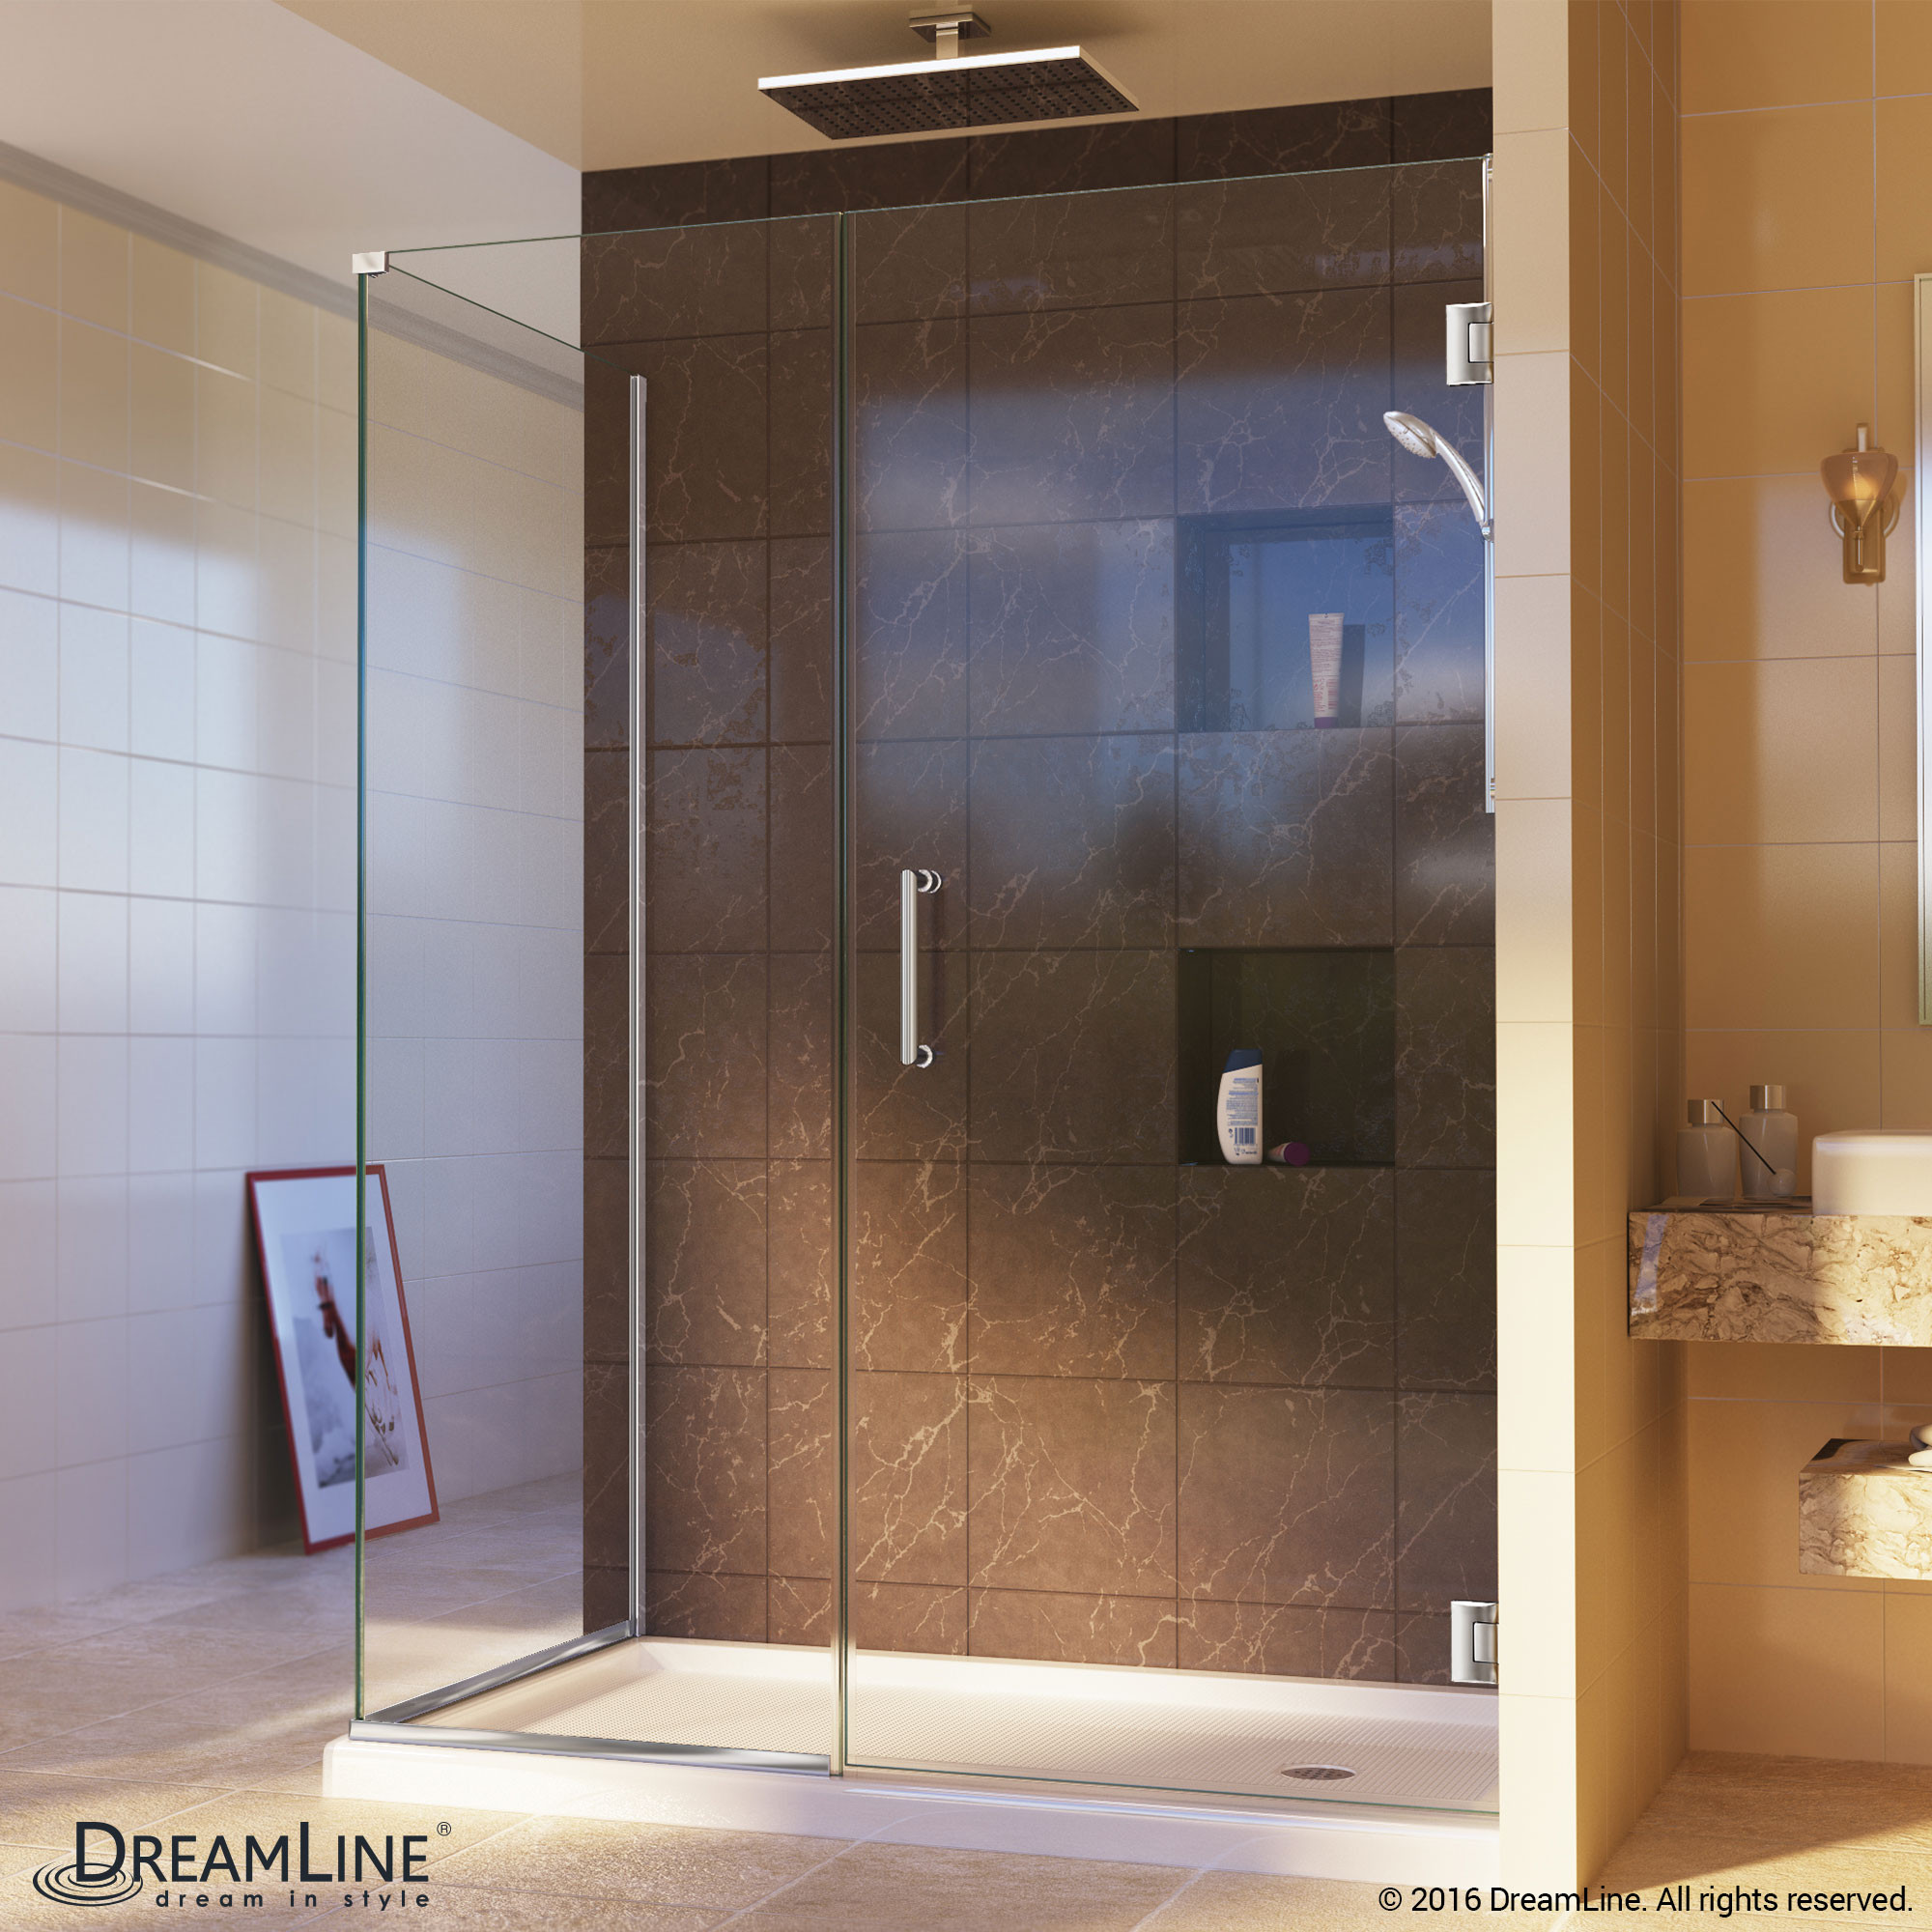 DreamLine SHEN-24475340-01 Unidoor Plus Hinged Shower Enclosure In Chrome Finish Hardware